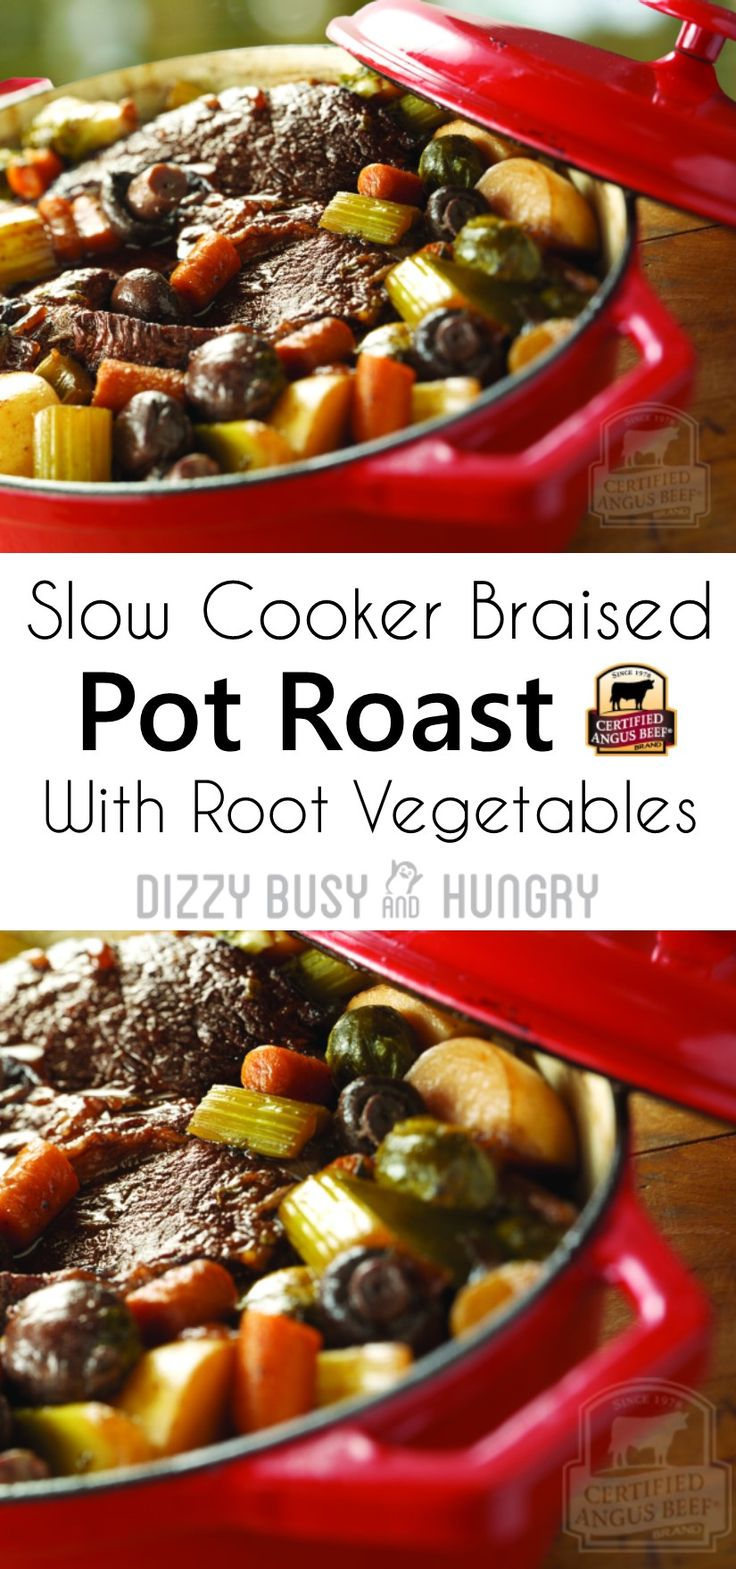 braised pot roast with root vegetables slow cooker recipes crock pot ...